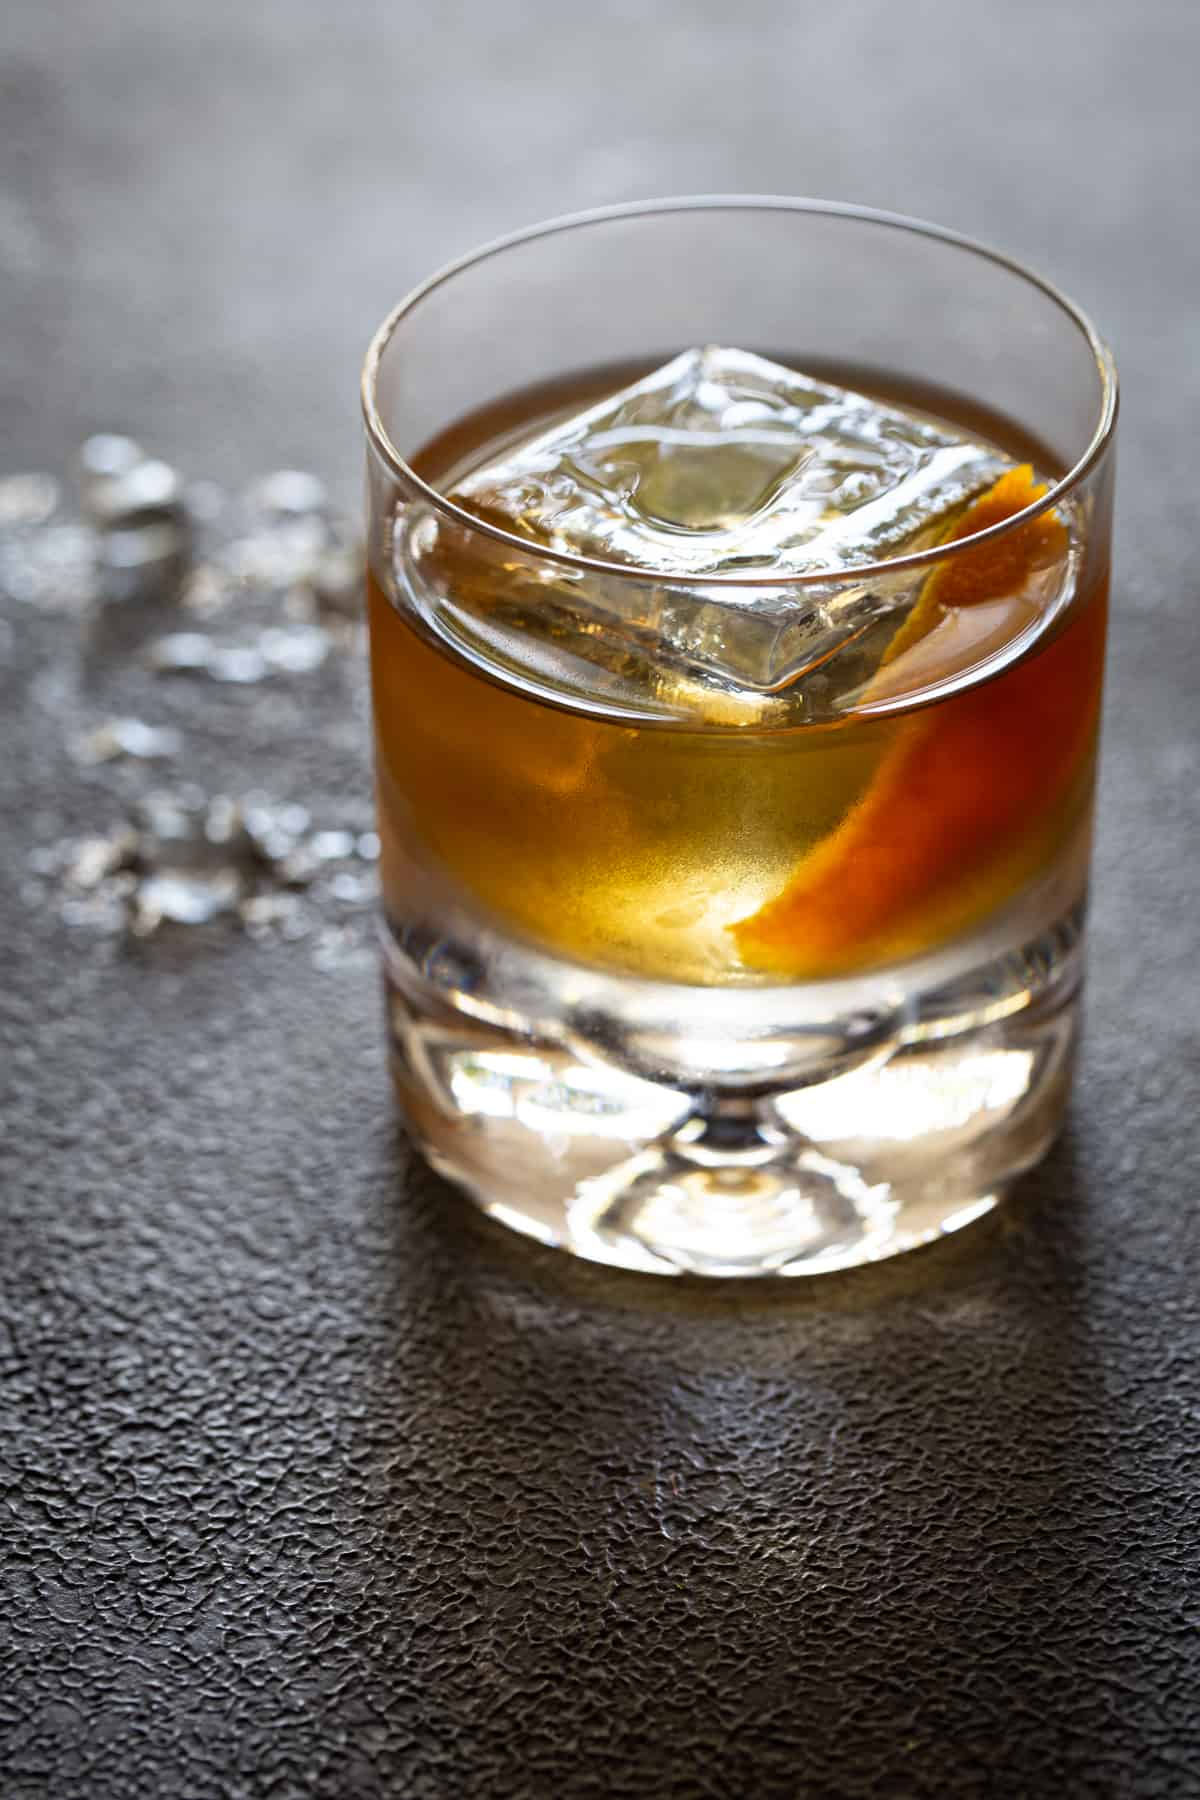 A glass with Old fashioned and Whiskey cocktail.